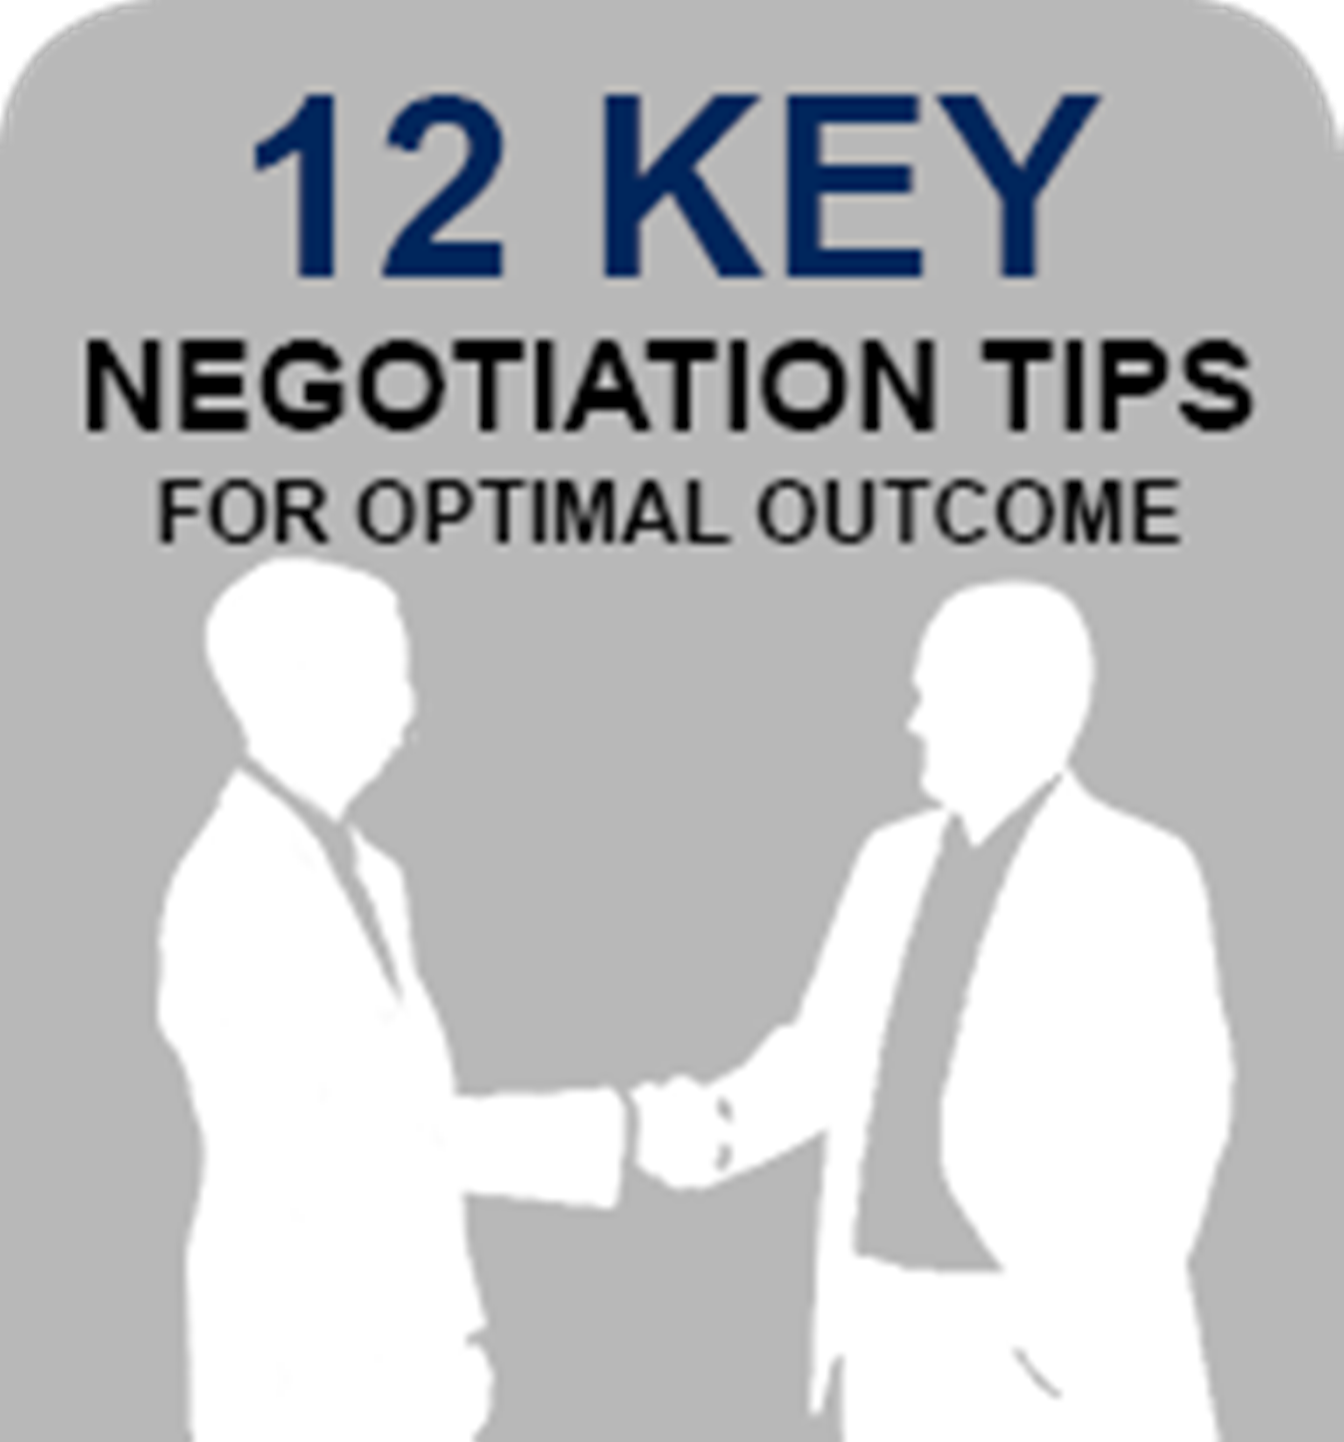 Tech M&A Monthly: M&A Negotiation Tips #3 & 4